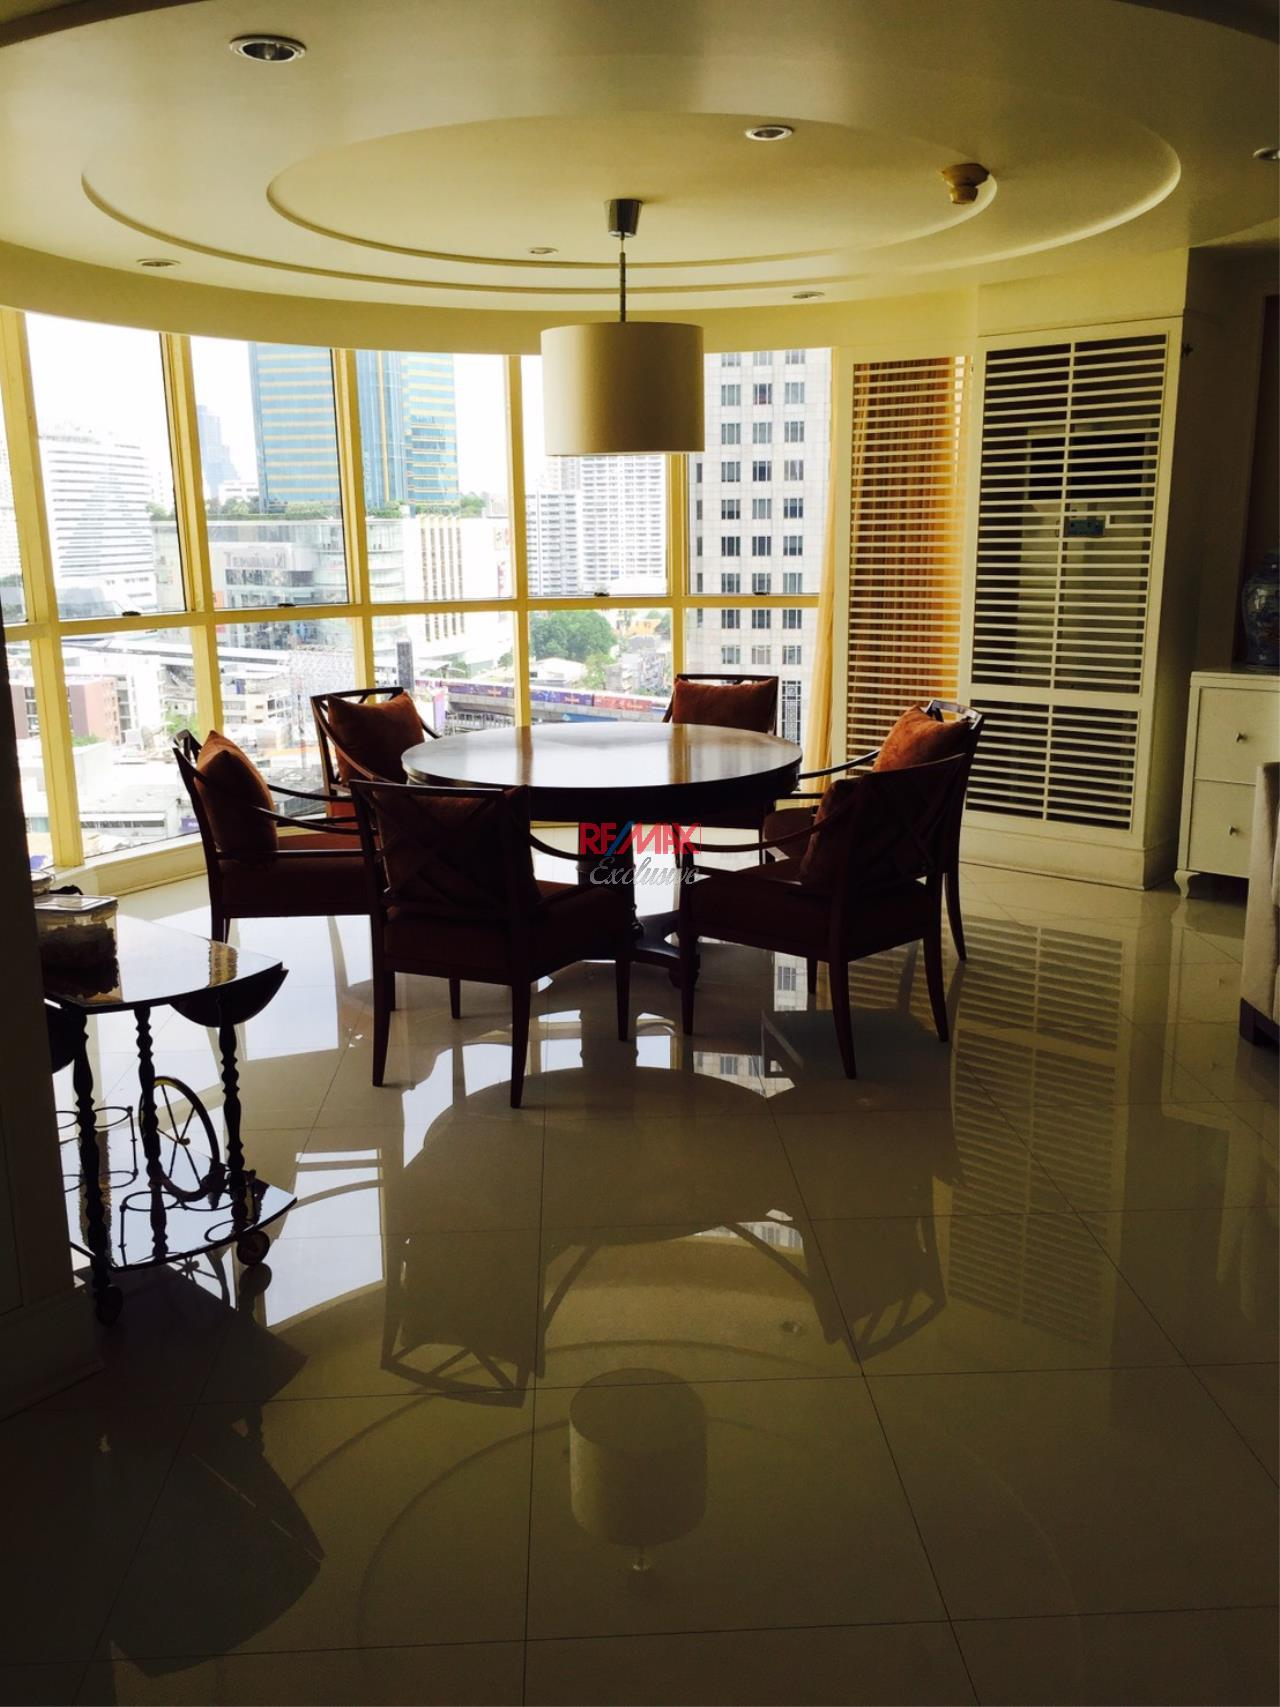 RE/MAX Exclusive Agency's City Lake Tower Penthouse 4 Bedroom For Sale 32,000,000 4